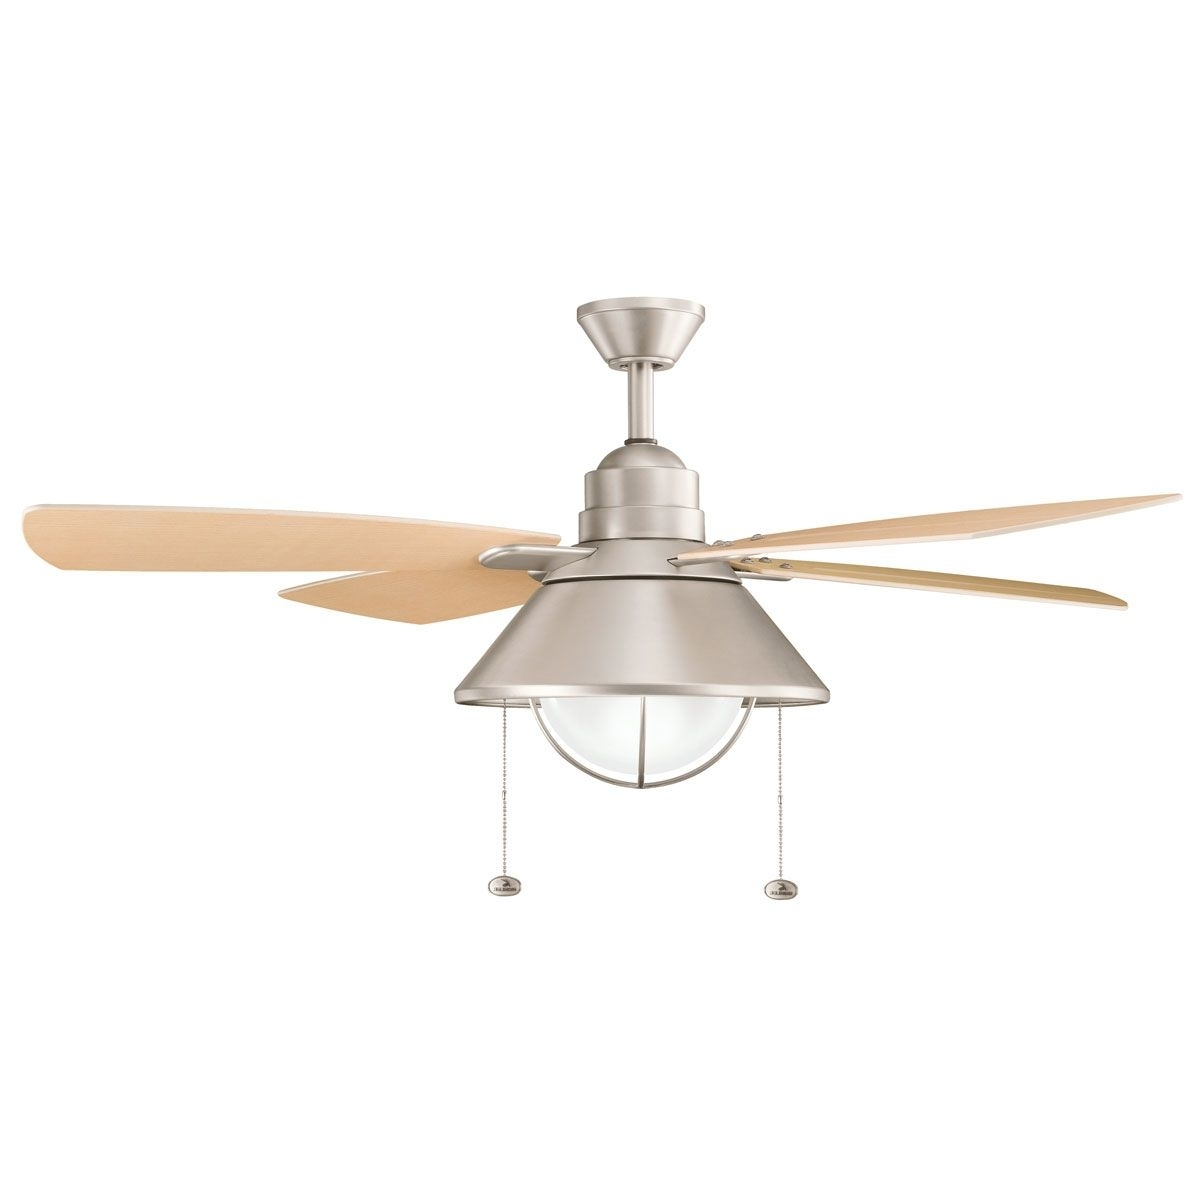 Newest Coastal Outdoor Ceiling Fans Pertaining To Kichler Fans Seaside Ceiling Fan In Brushed Nickel (View 5 of 20)